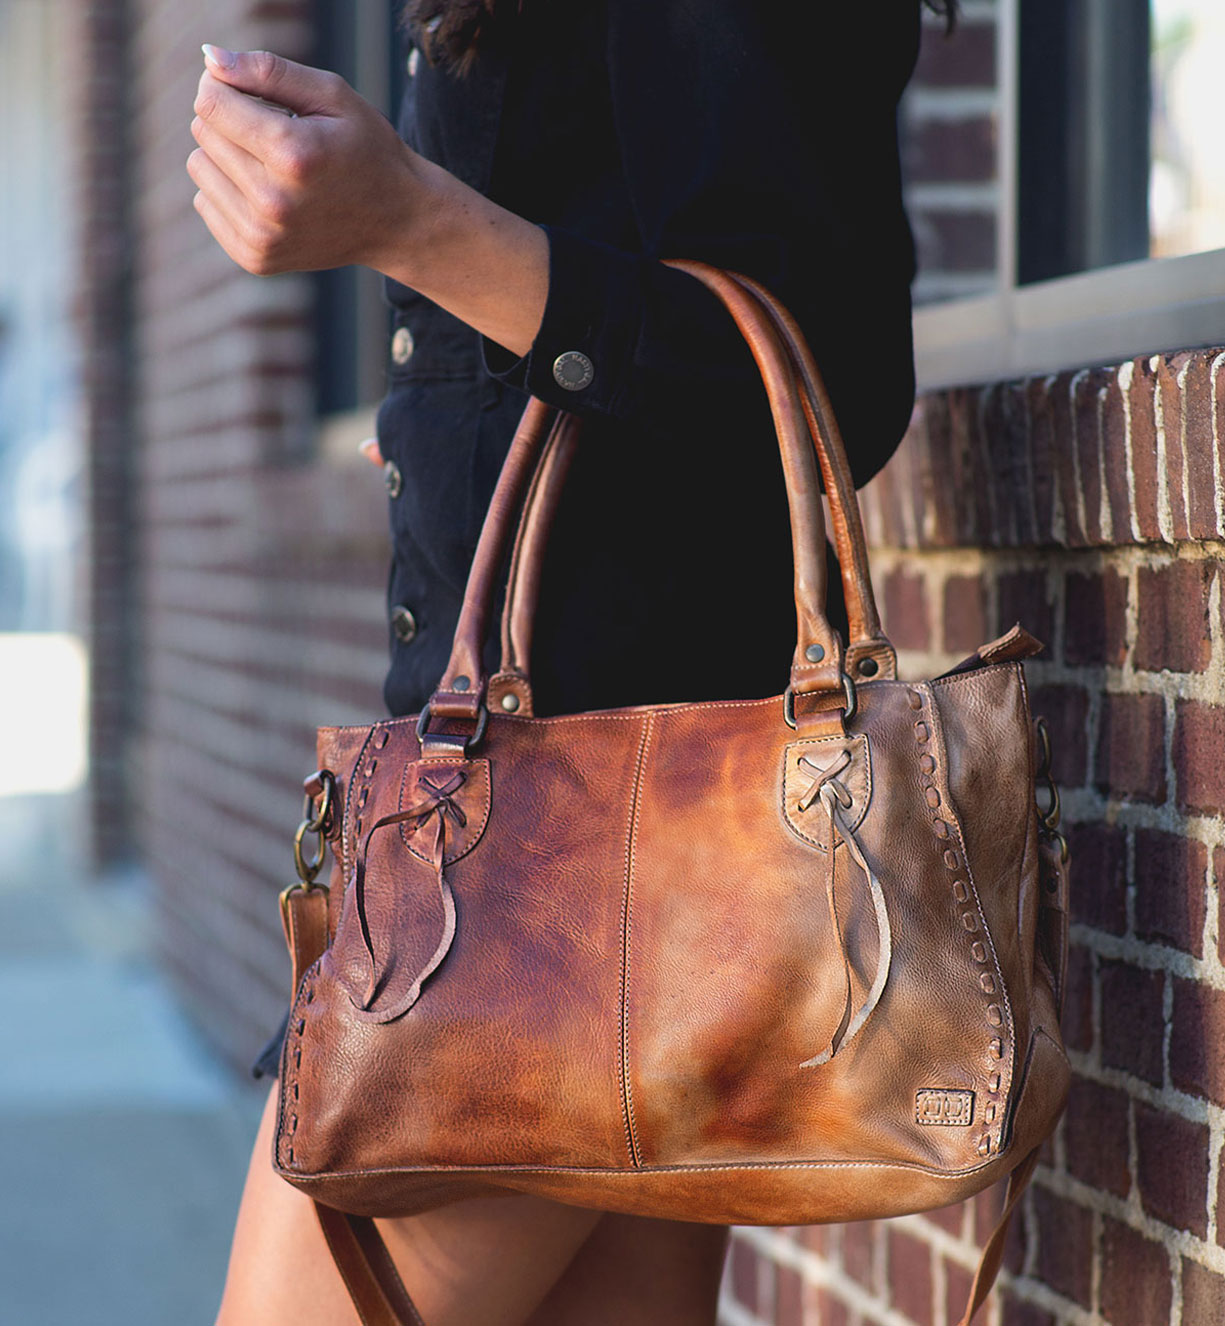 Woman is holding a handbag in her hand